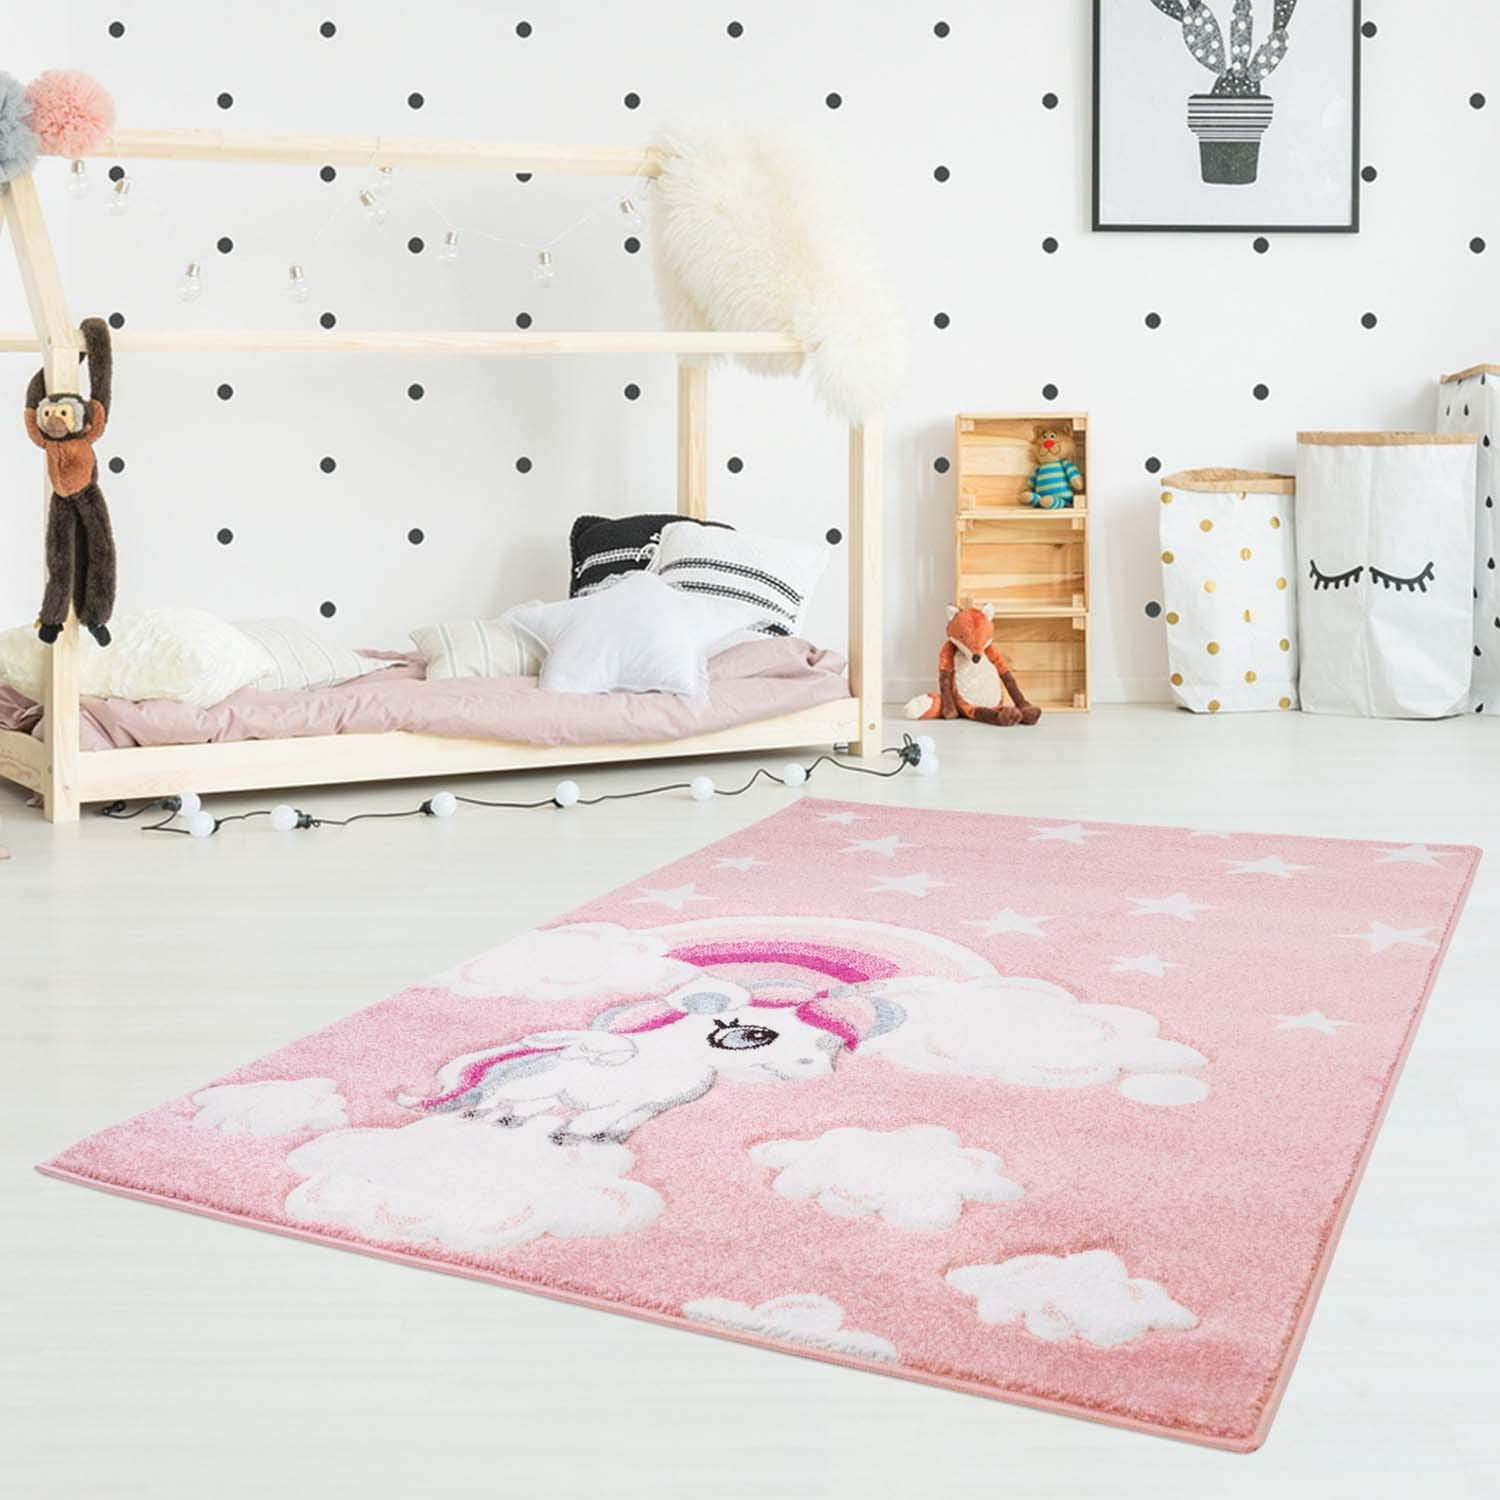 Unicorn Children's Rug - Soft Pink 120x170cm